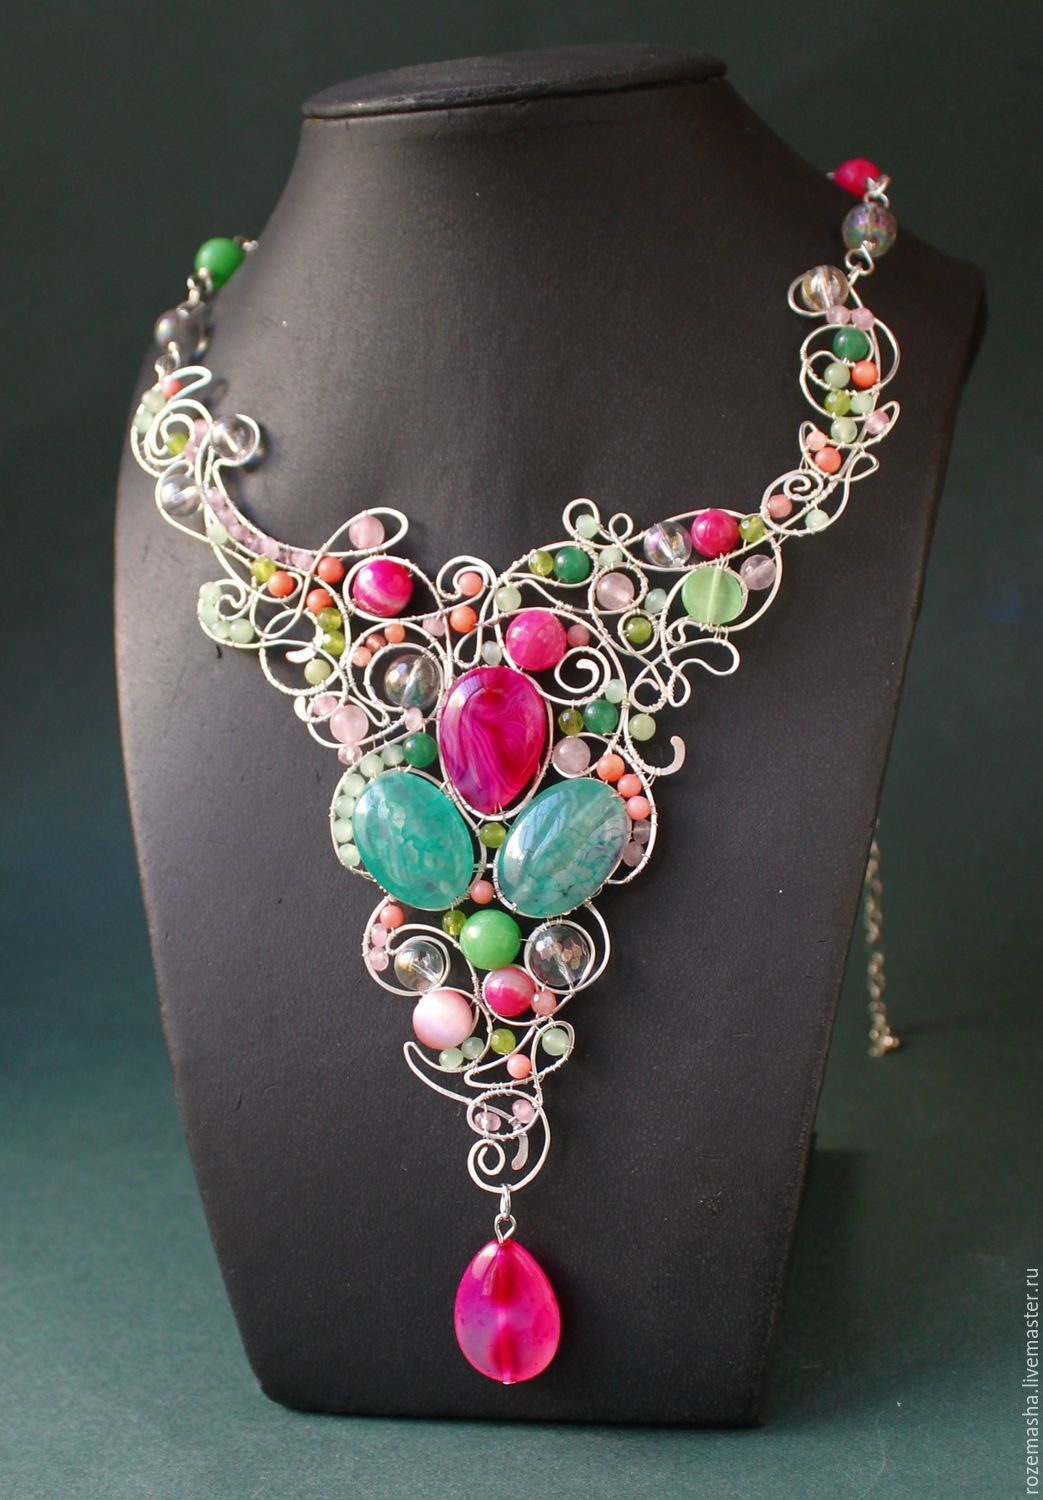 e7856774d3f06 Necklaces & Beads handmade. Order necklace tenderness. color of magic.  Livemaster. Art nouveau, exclusive gift